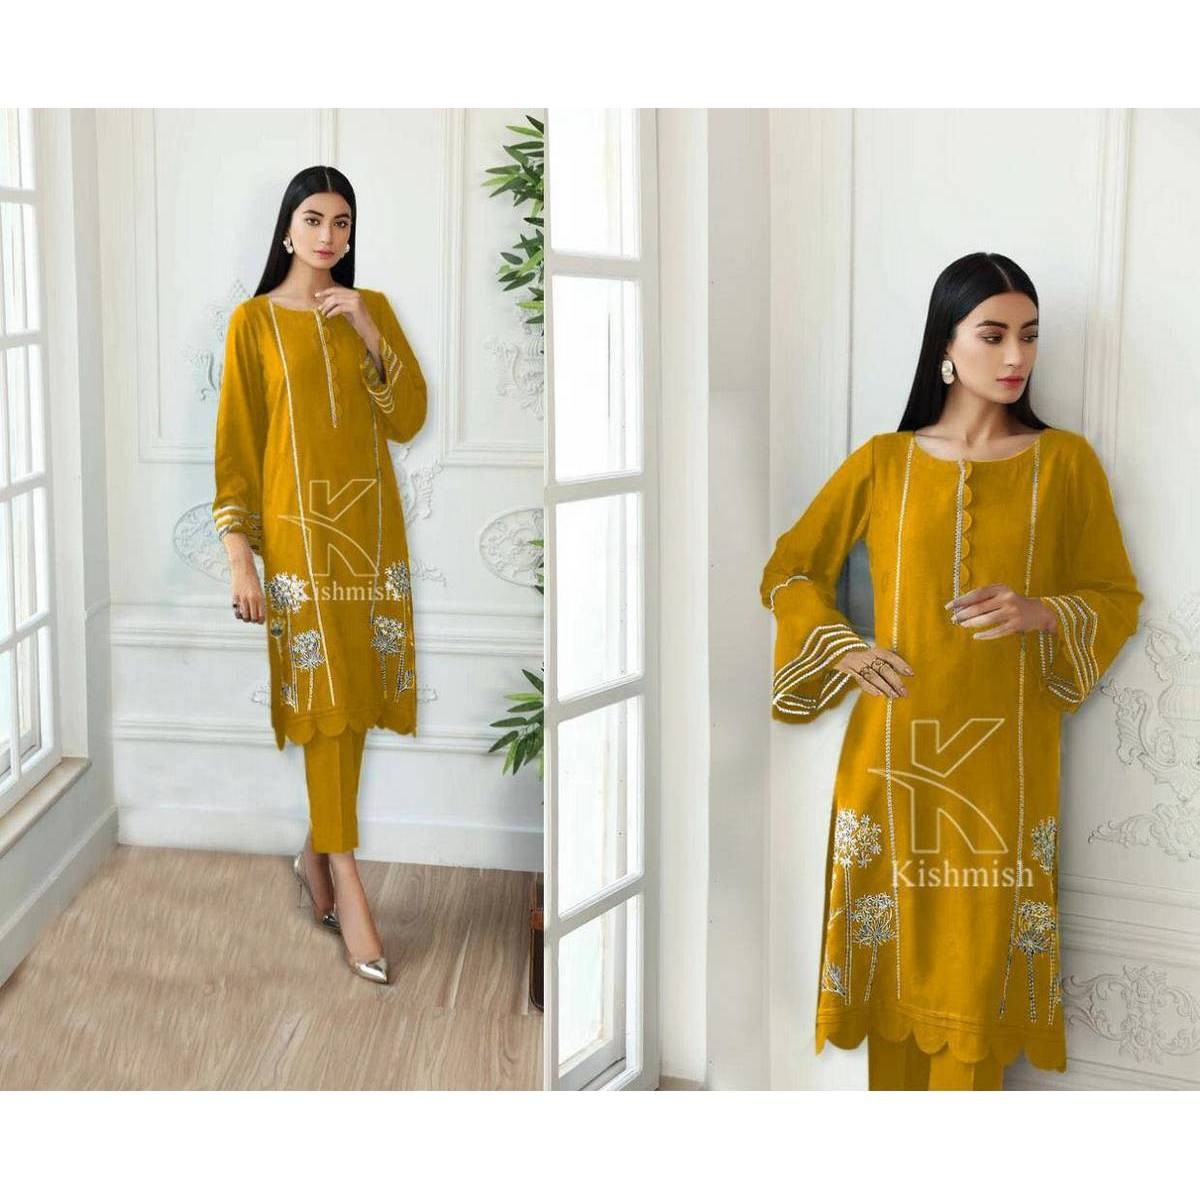 WPM Designer Embroidered Summer Suit (2 PCs) Kurta Shalwar for Women / Girls / Ladies (Bring you Style / Be in your Style - Party Fashion / Latest Summer Collection 2021) Ready to wear / Readymade (Limited Stock / Limited Time Offer Sale) New Year Sale